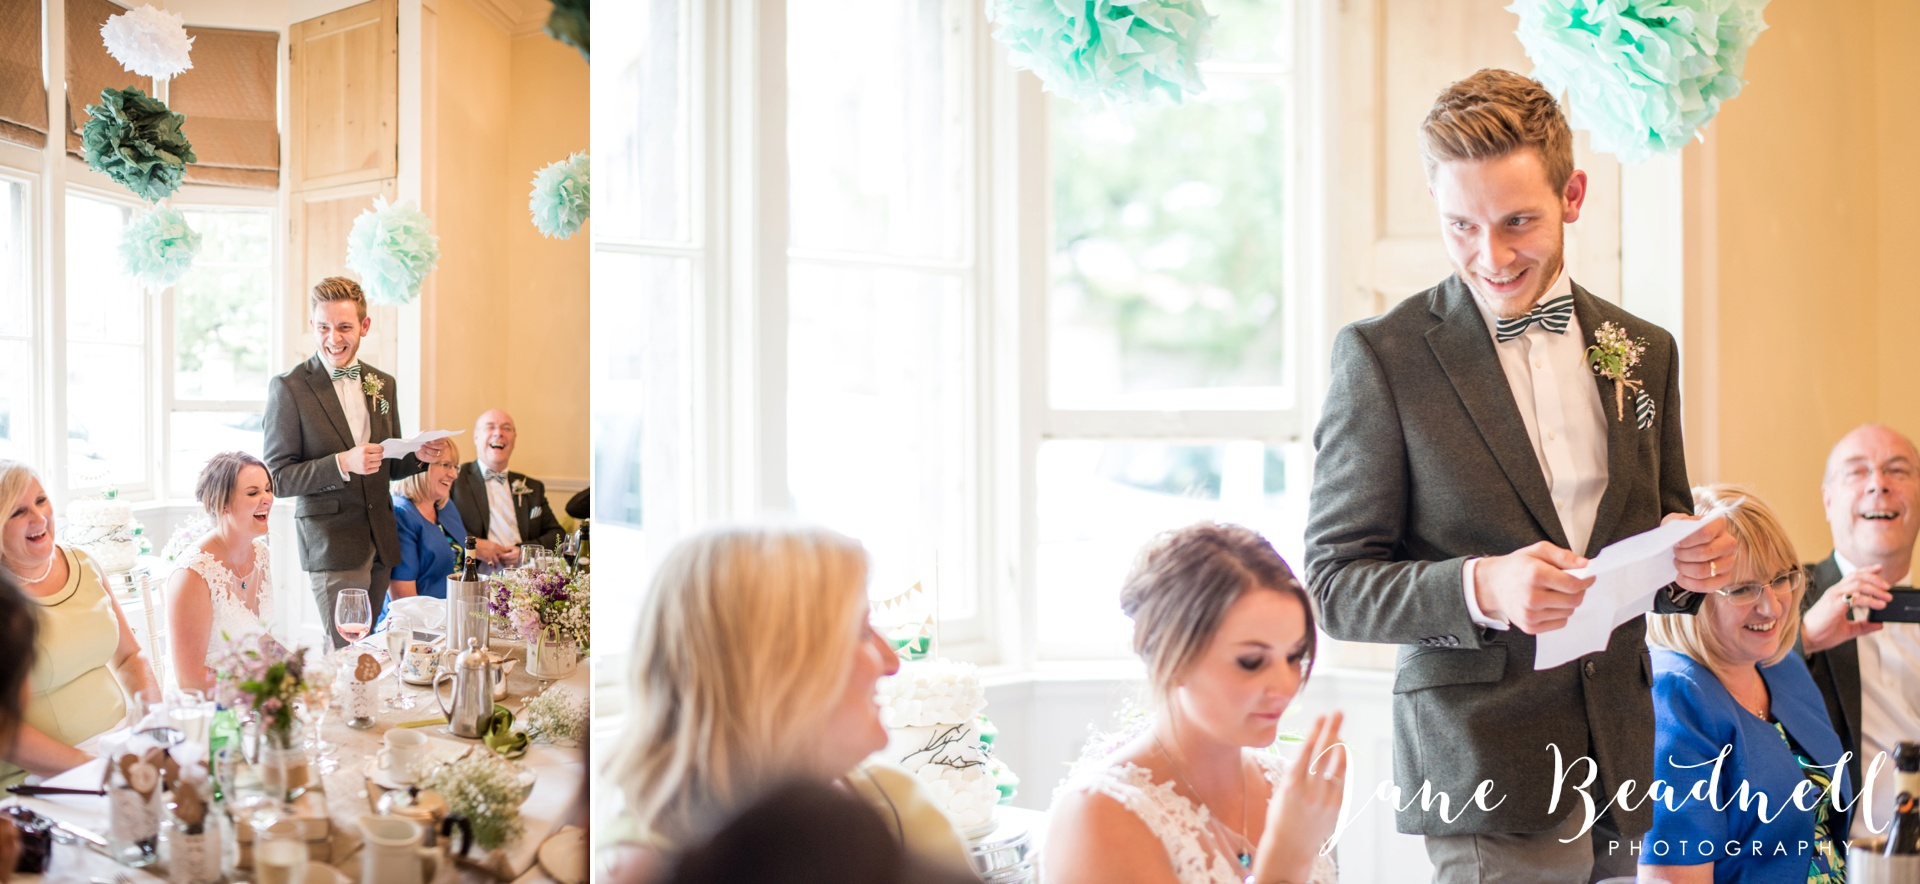 Jane Beadnell fine art wedding photographer The Old Deanery Ripon_0065